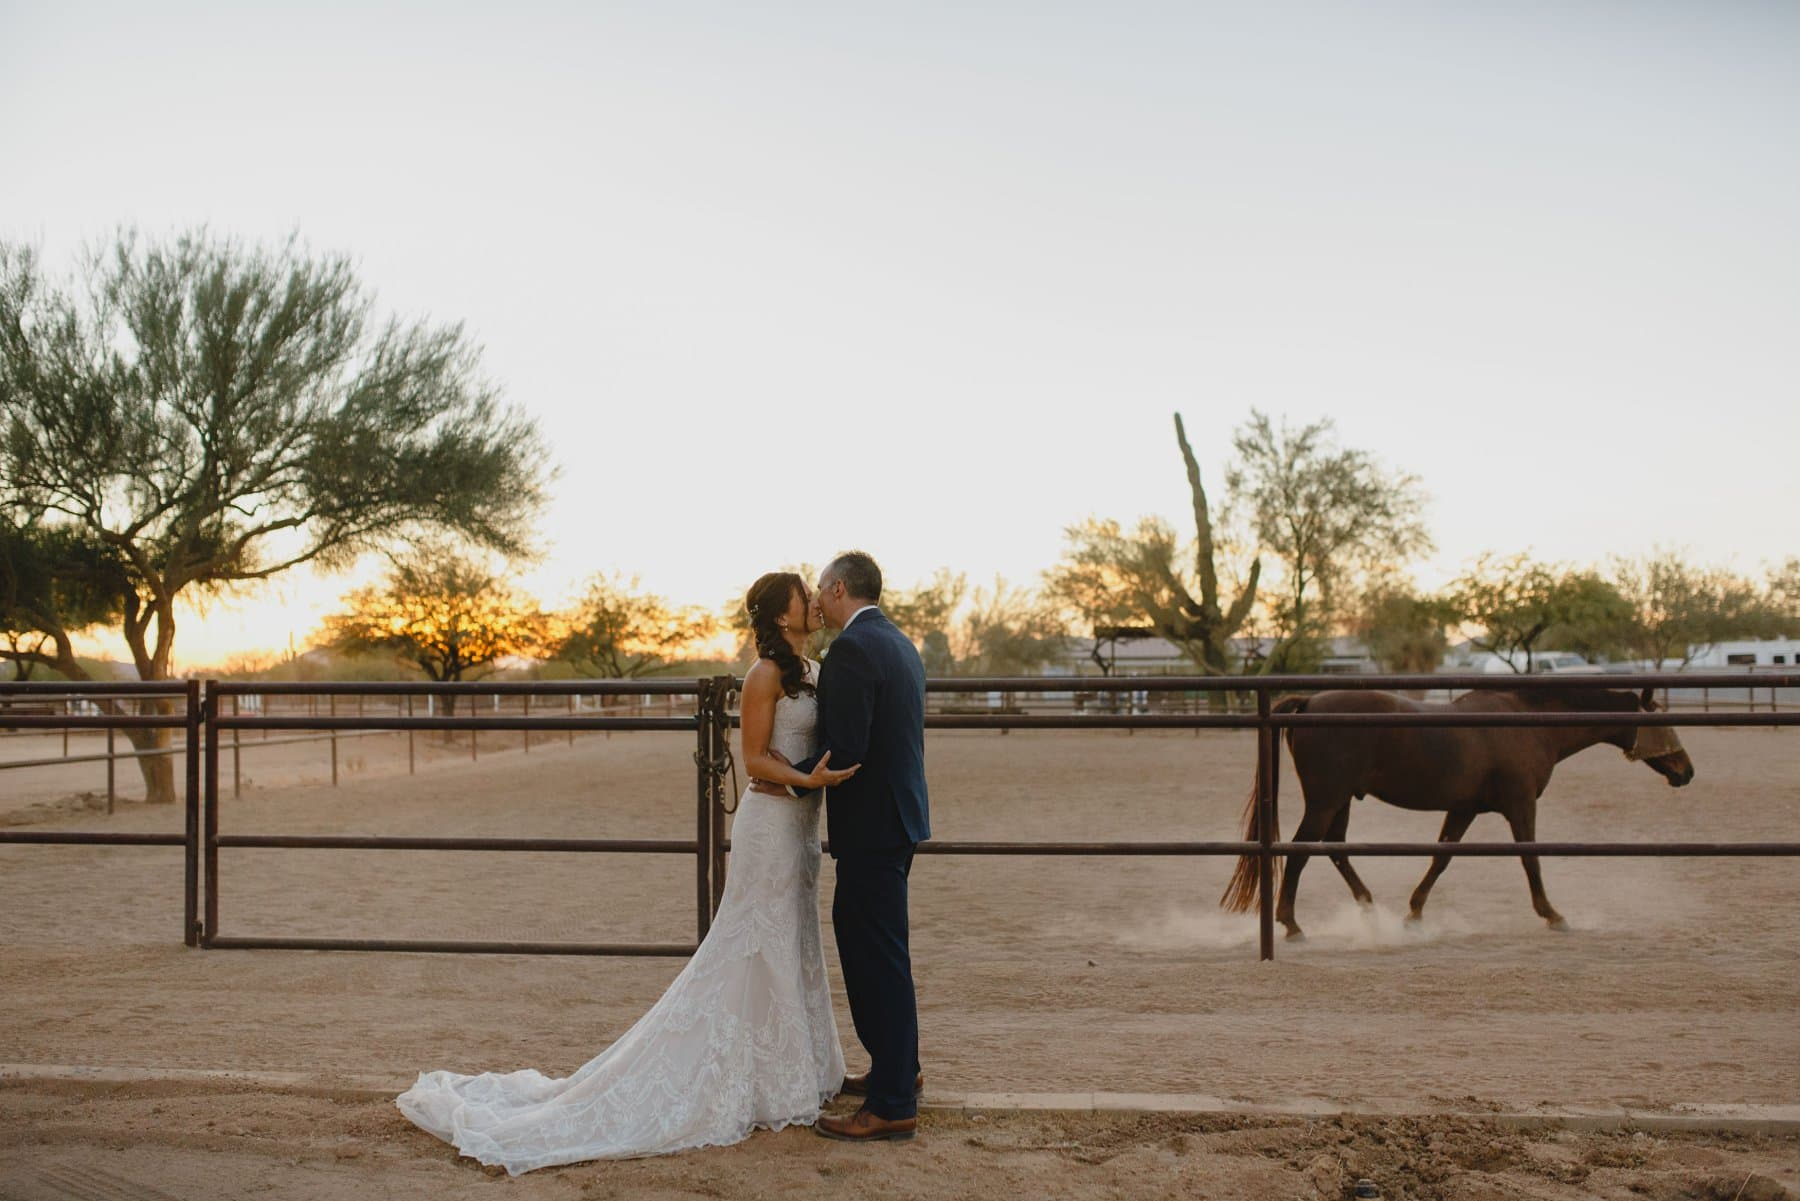 wedding at a horse barn in Arizona